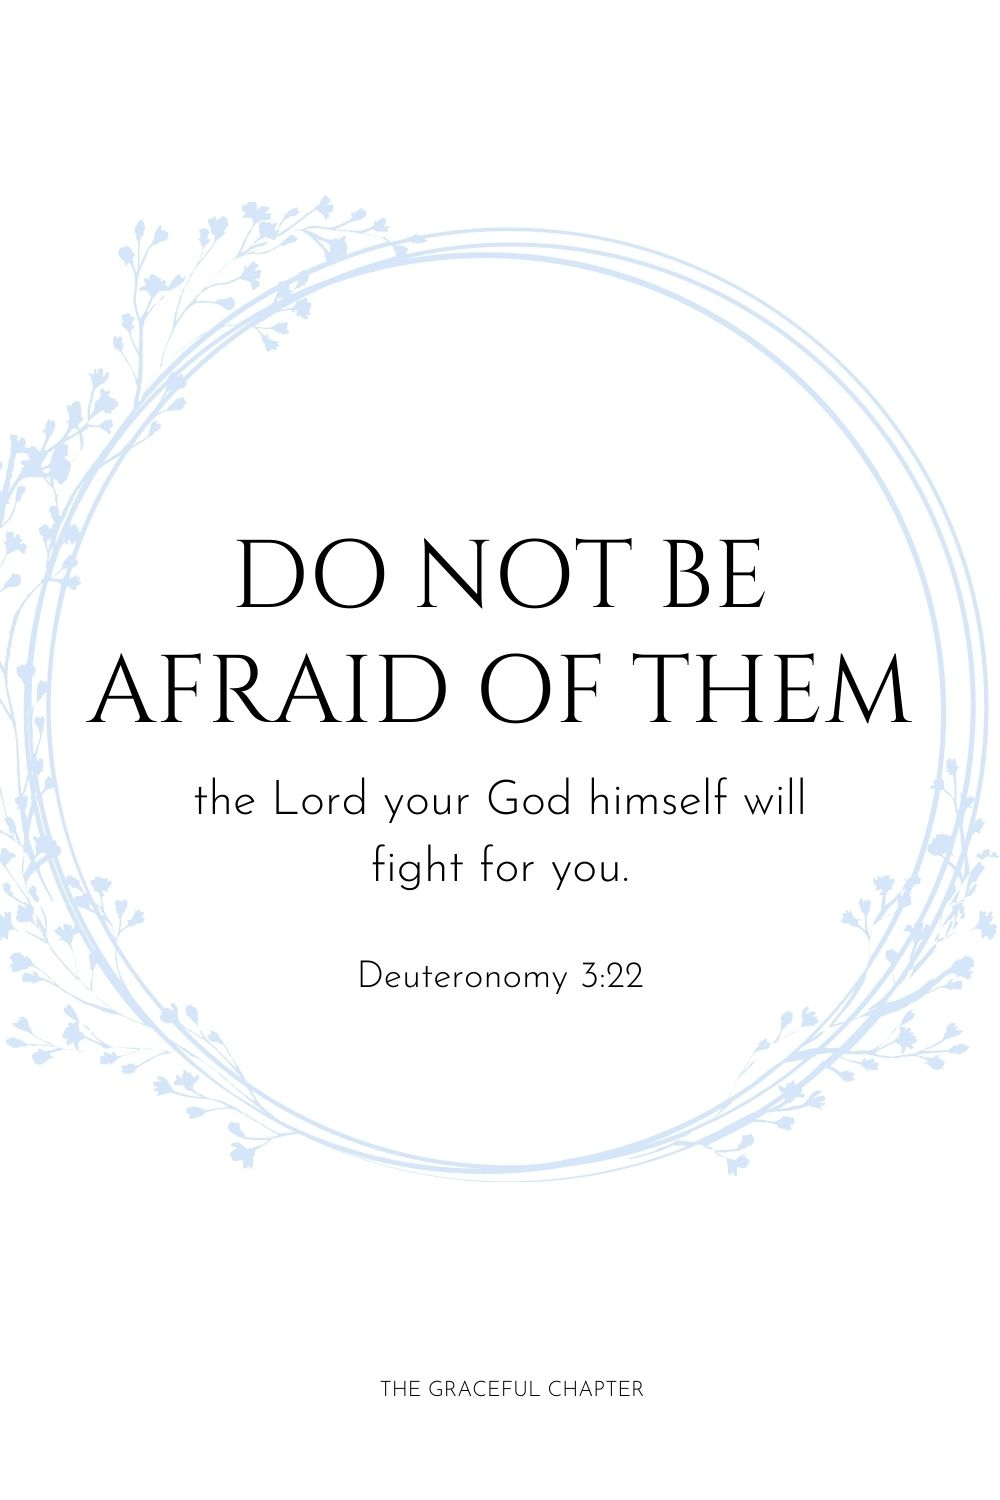 Do not be afraid of them; the Lord your God himself will fight for you. Deuteronomy 3:22